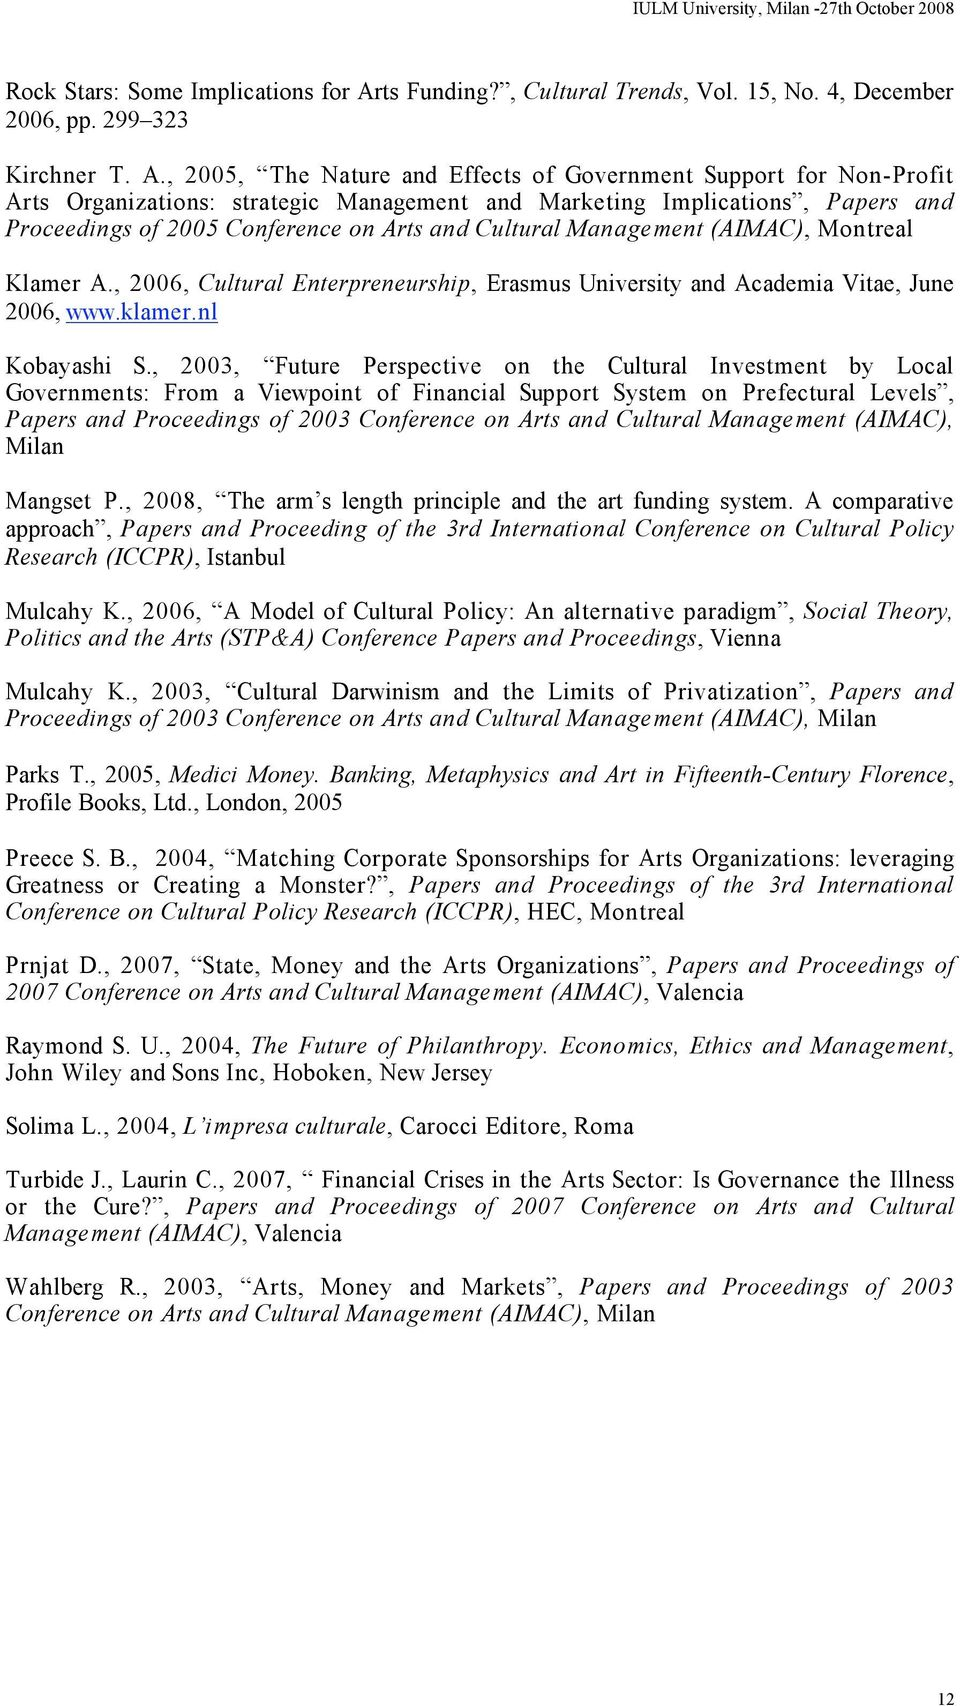 , 2005, The Nature and Effects of Government Support for Non-Profit Arts Organizations: strategic Management and Marketing Implications, Papers and Proceedings of 2005 Conference on Arts and Cultural